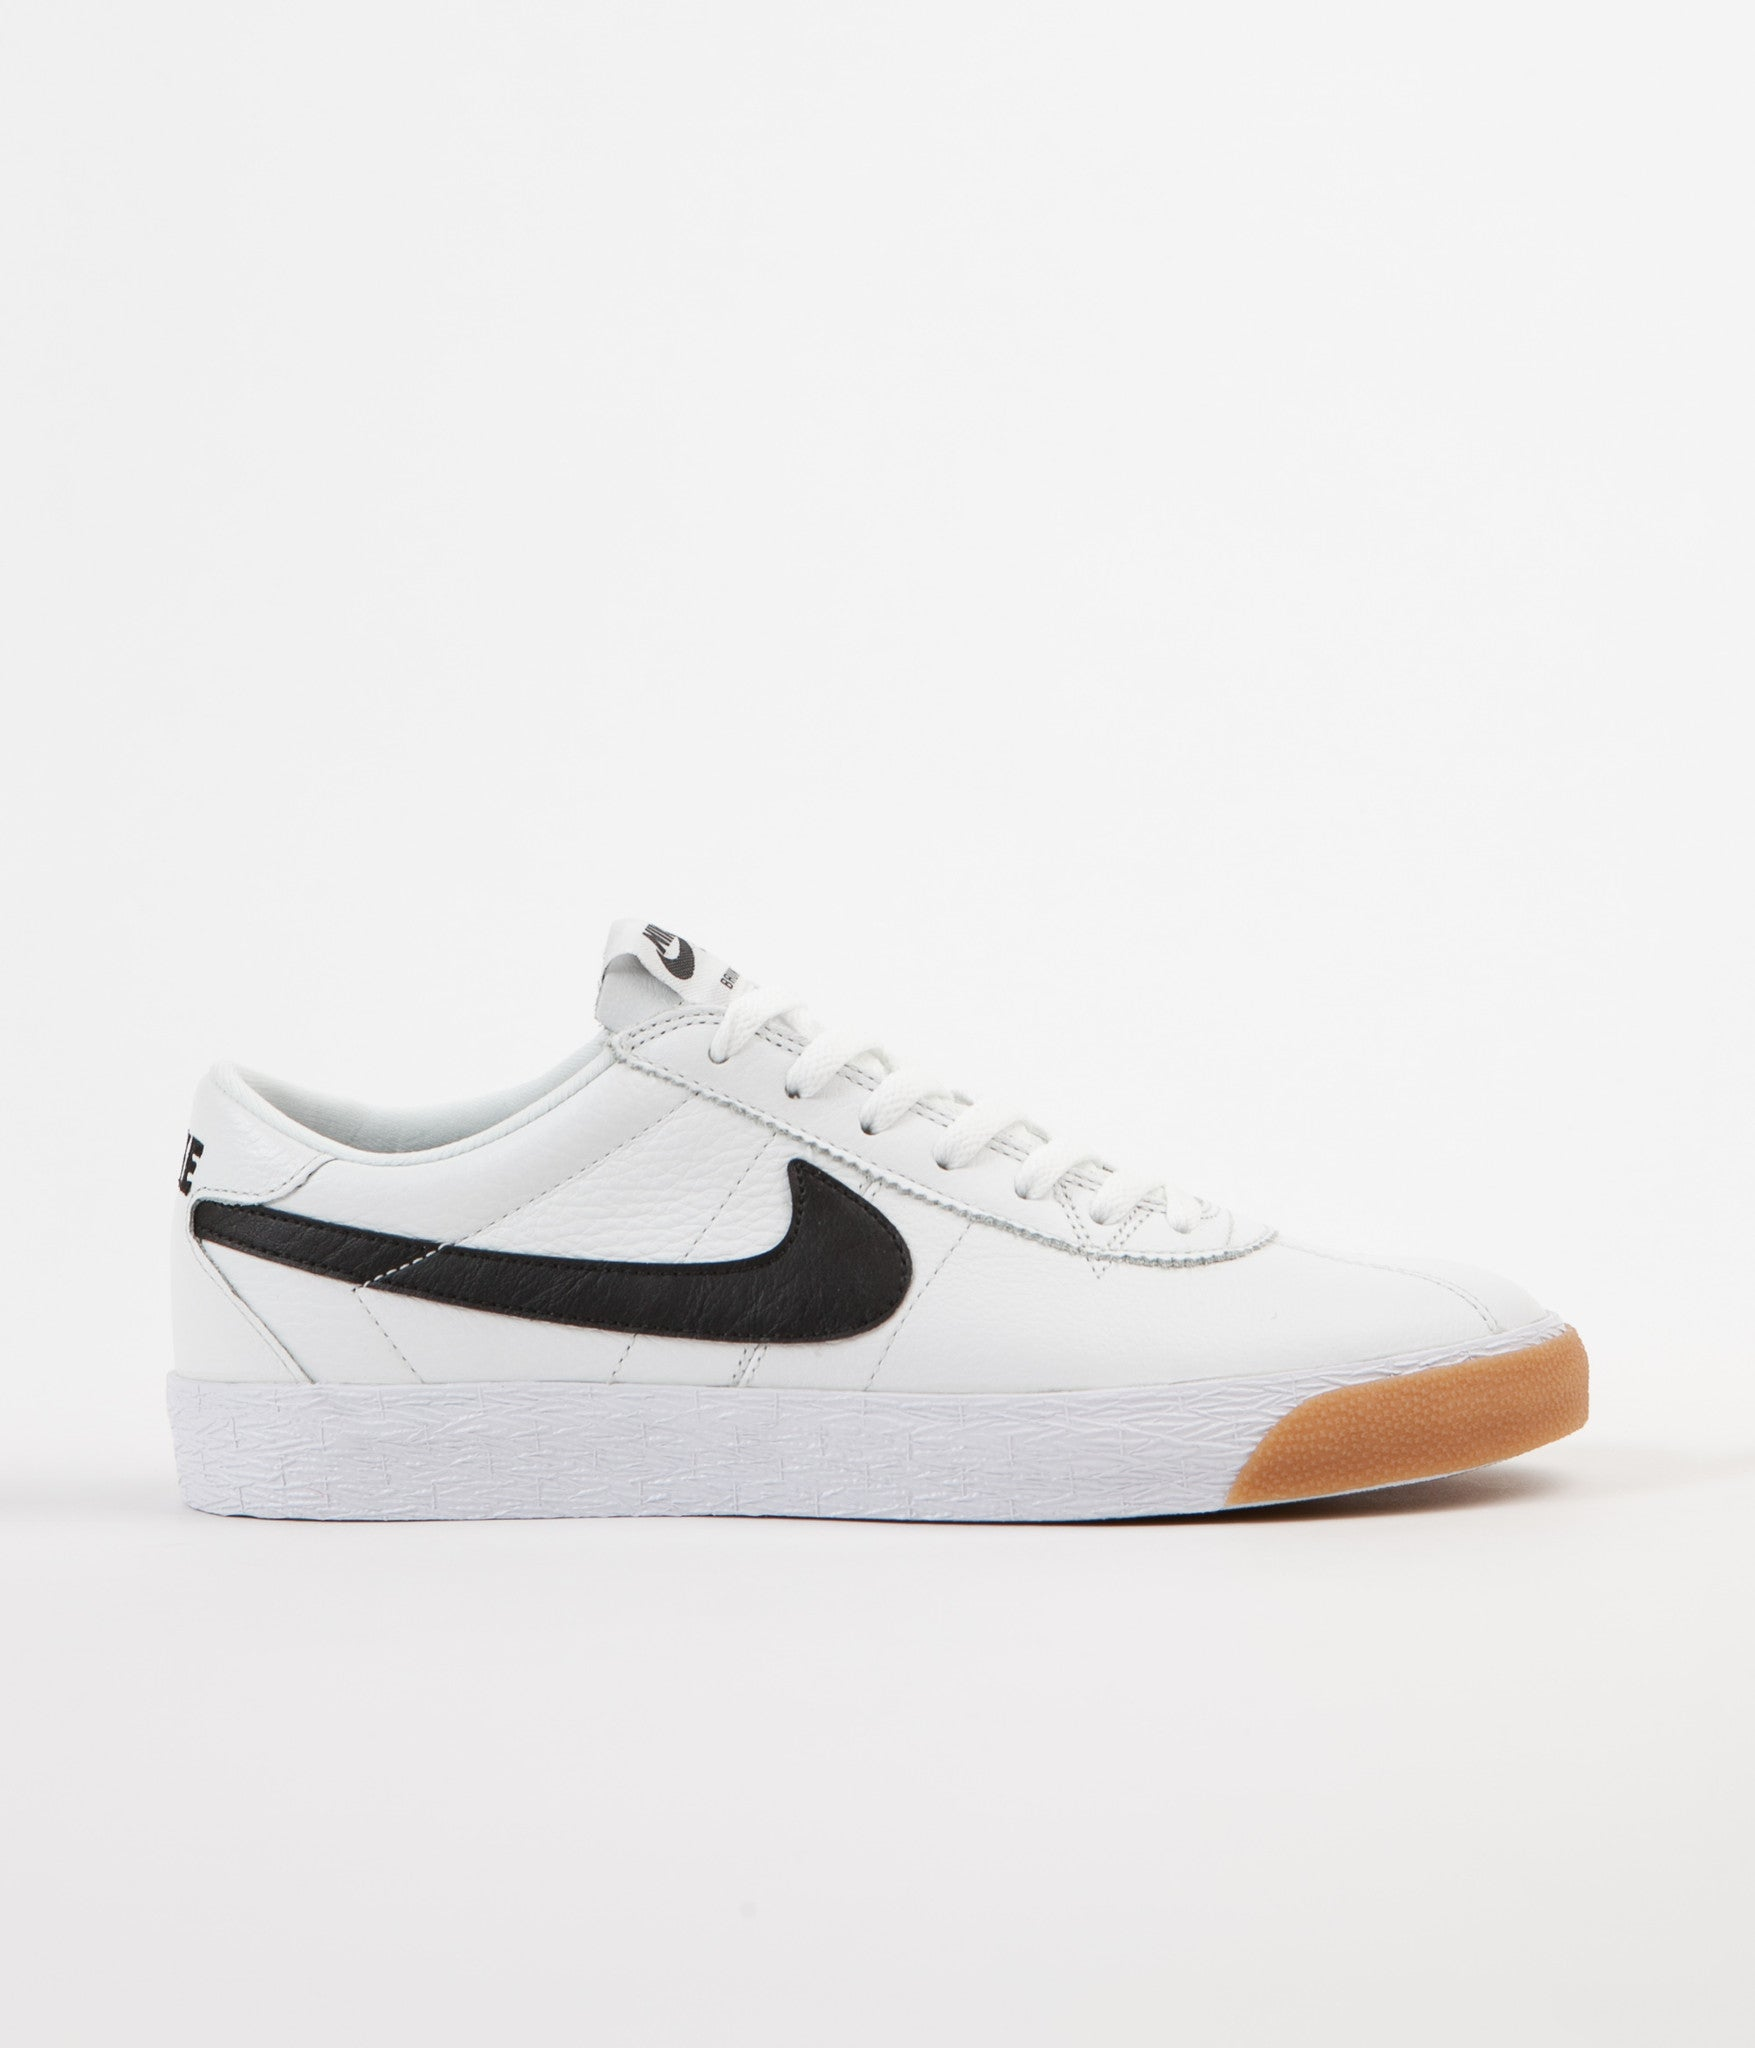 ... Nike SB Bruin Premium SE Shoes - Summit White / Black - White ...